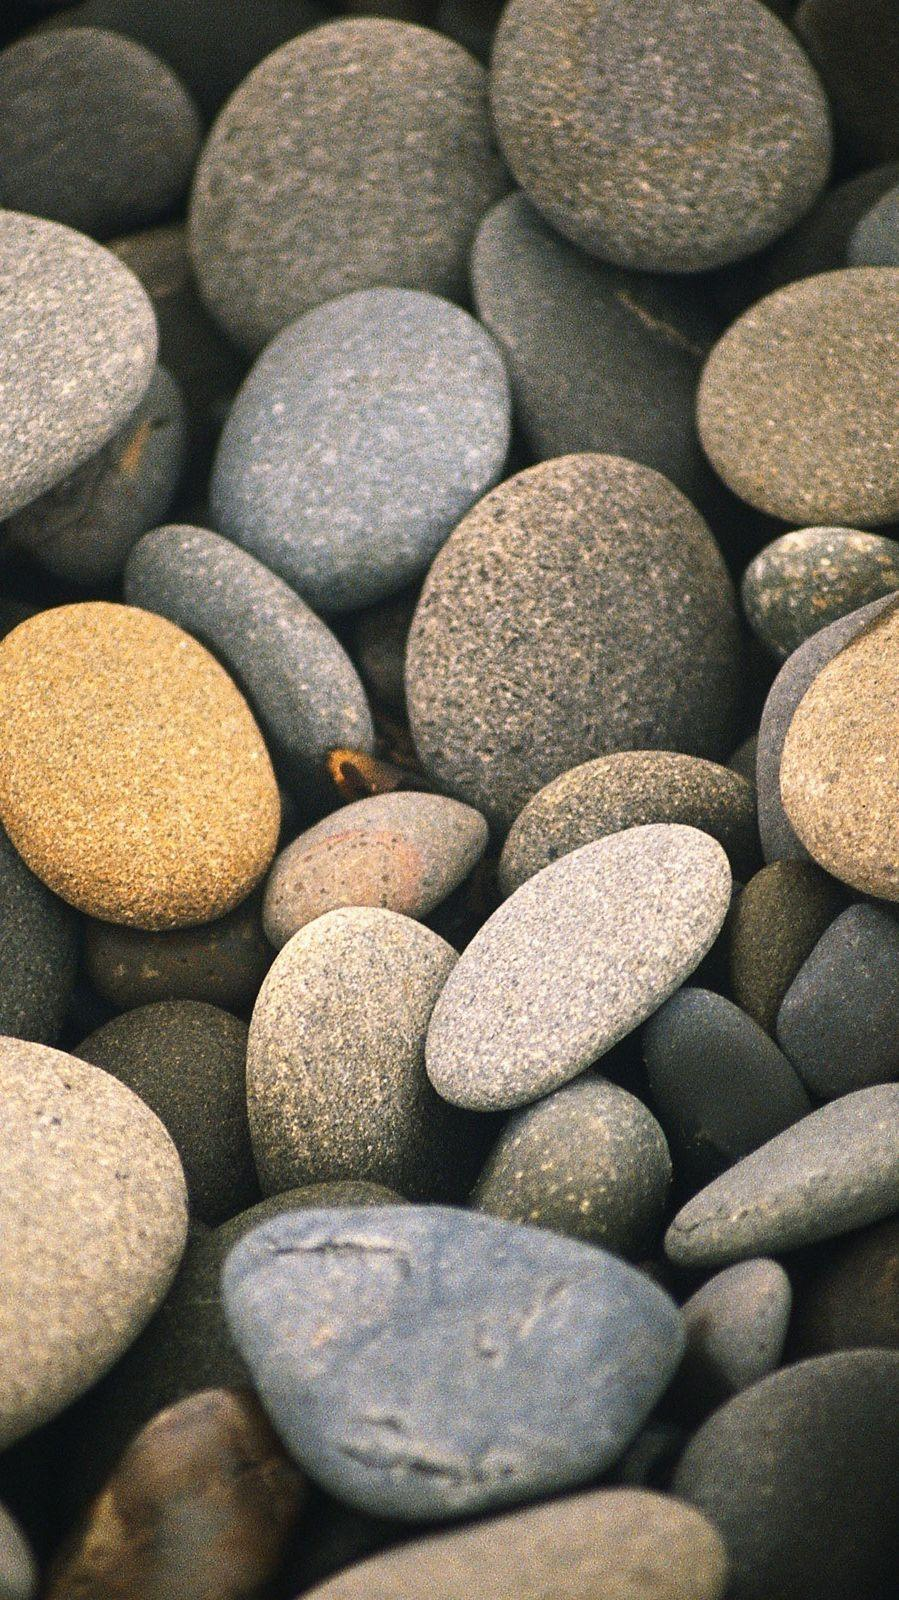 Minimalistic-Nature-Pebbles-iPhone-Wallpaper | iPhone Wallpapers ...